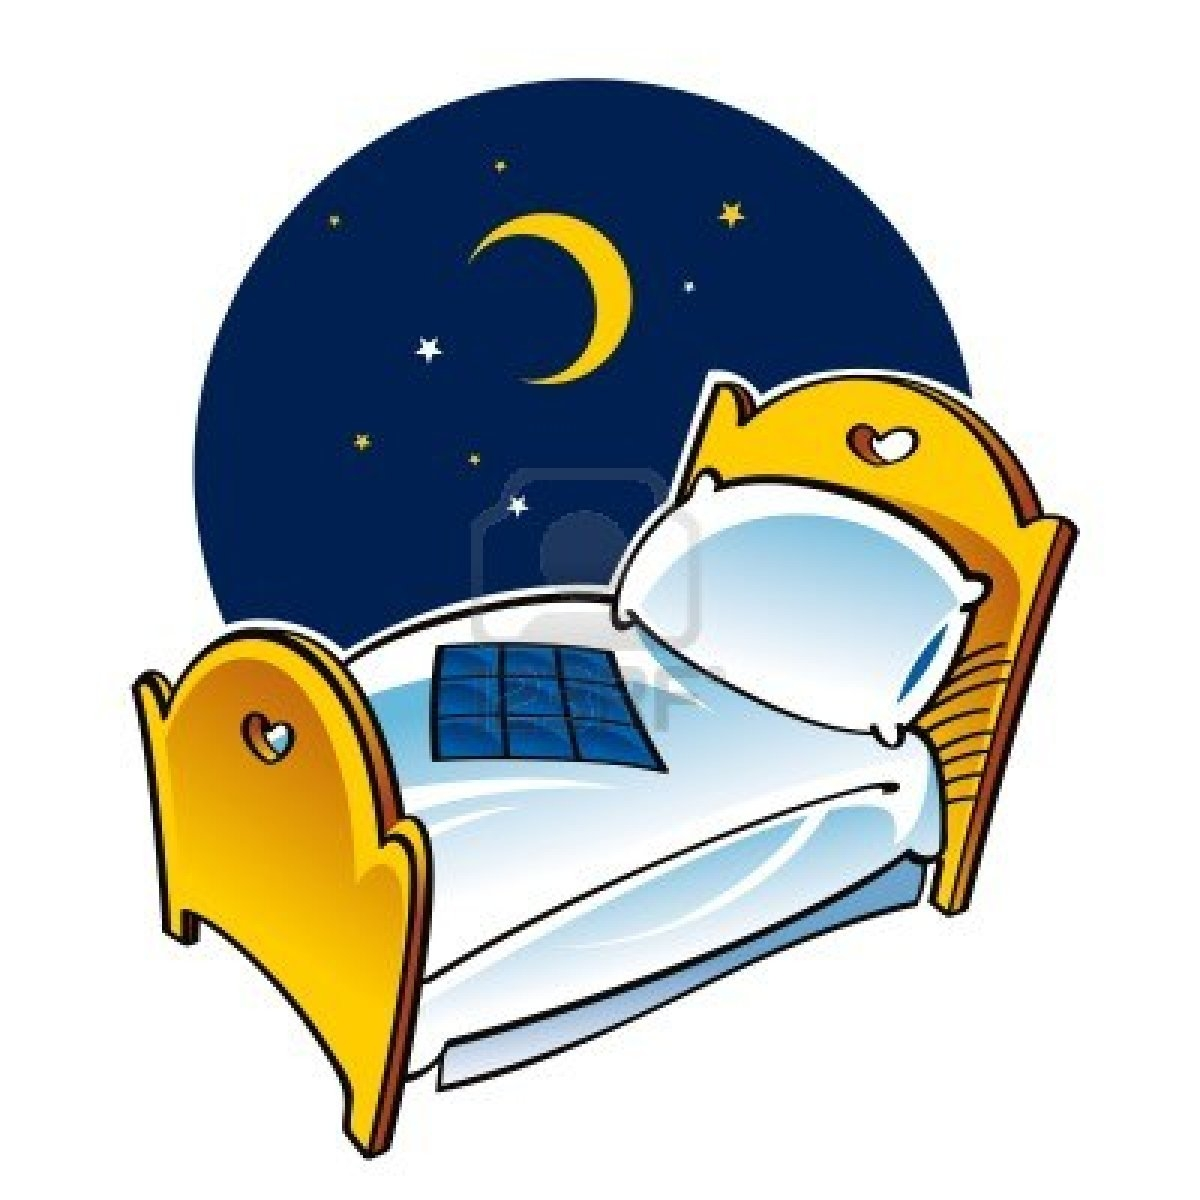 Bed clipart #8, Download drawings